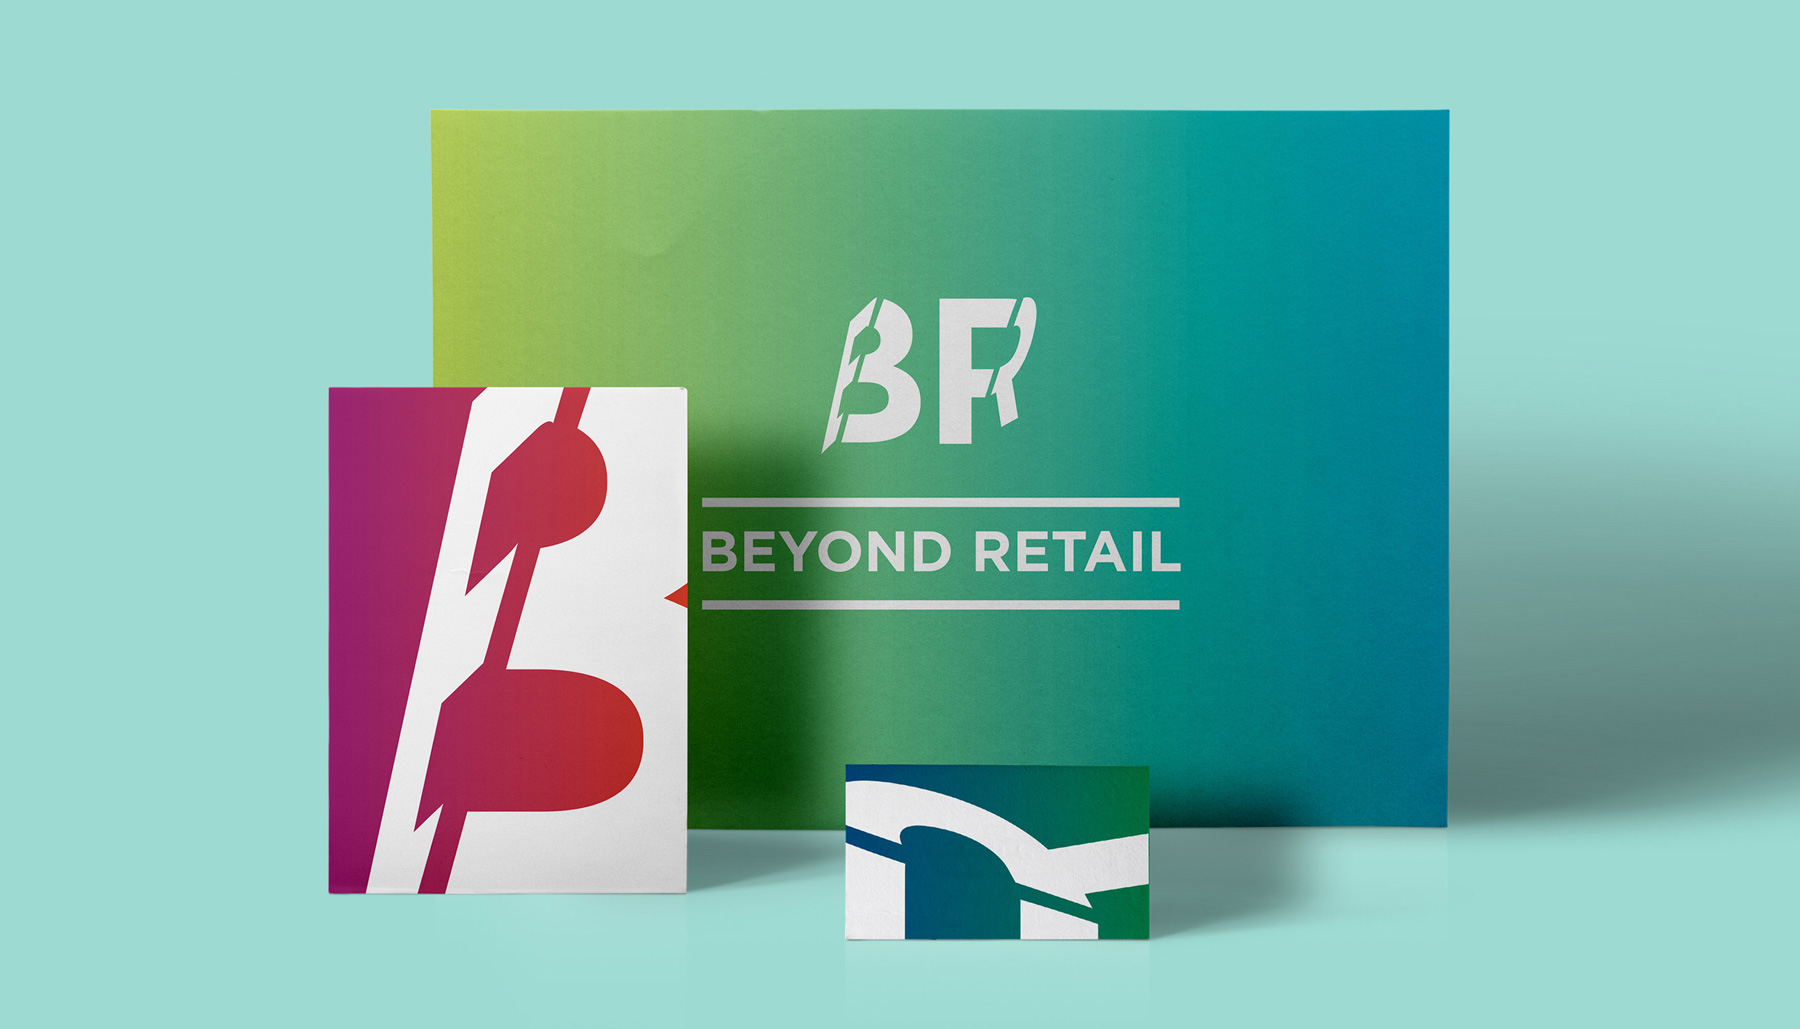 Beyond Retail / Dutchy Design / Branding & Design Portfolio